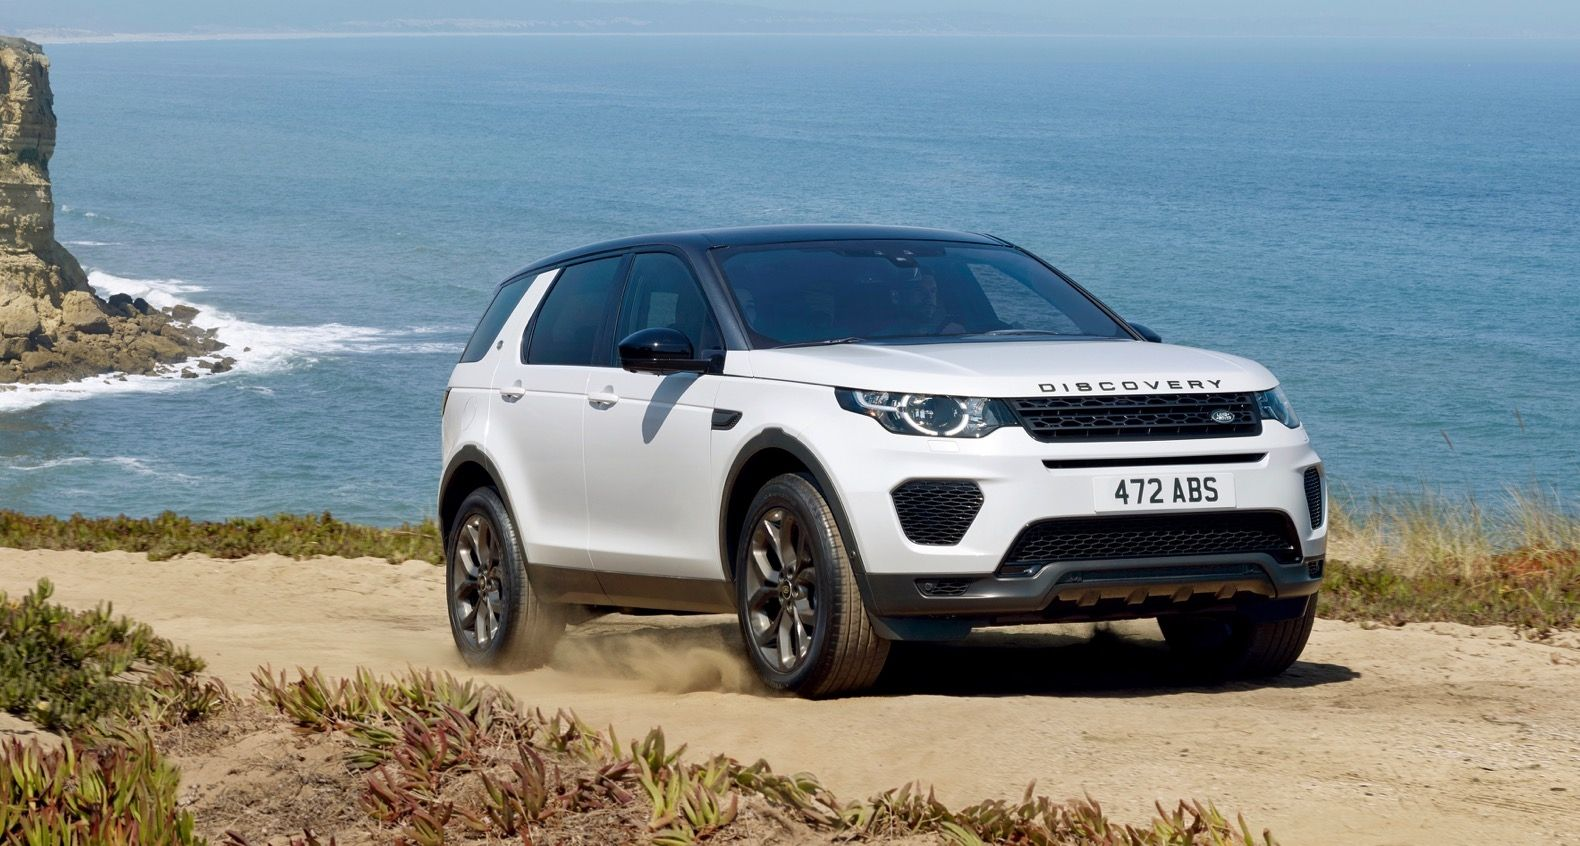 2019 Land Rover Discovery Sport Review, Release Date